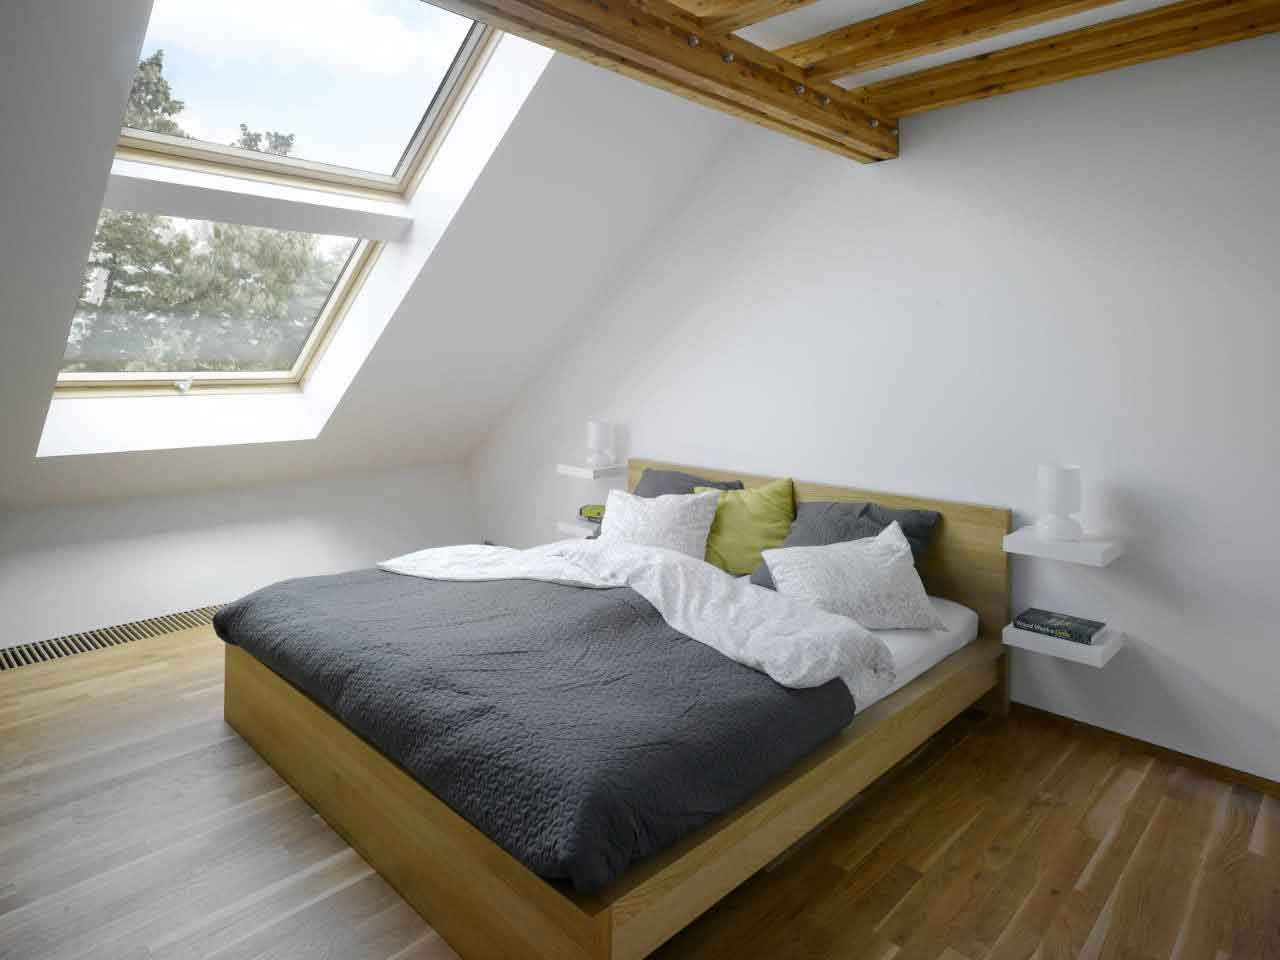 Minimalist Bedroom in the Attic